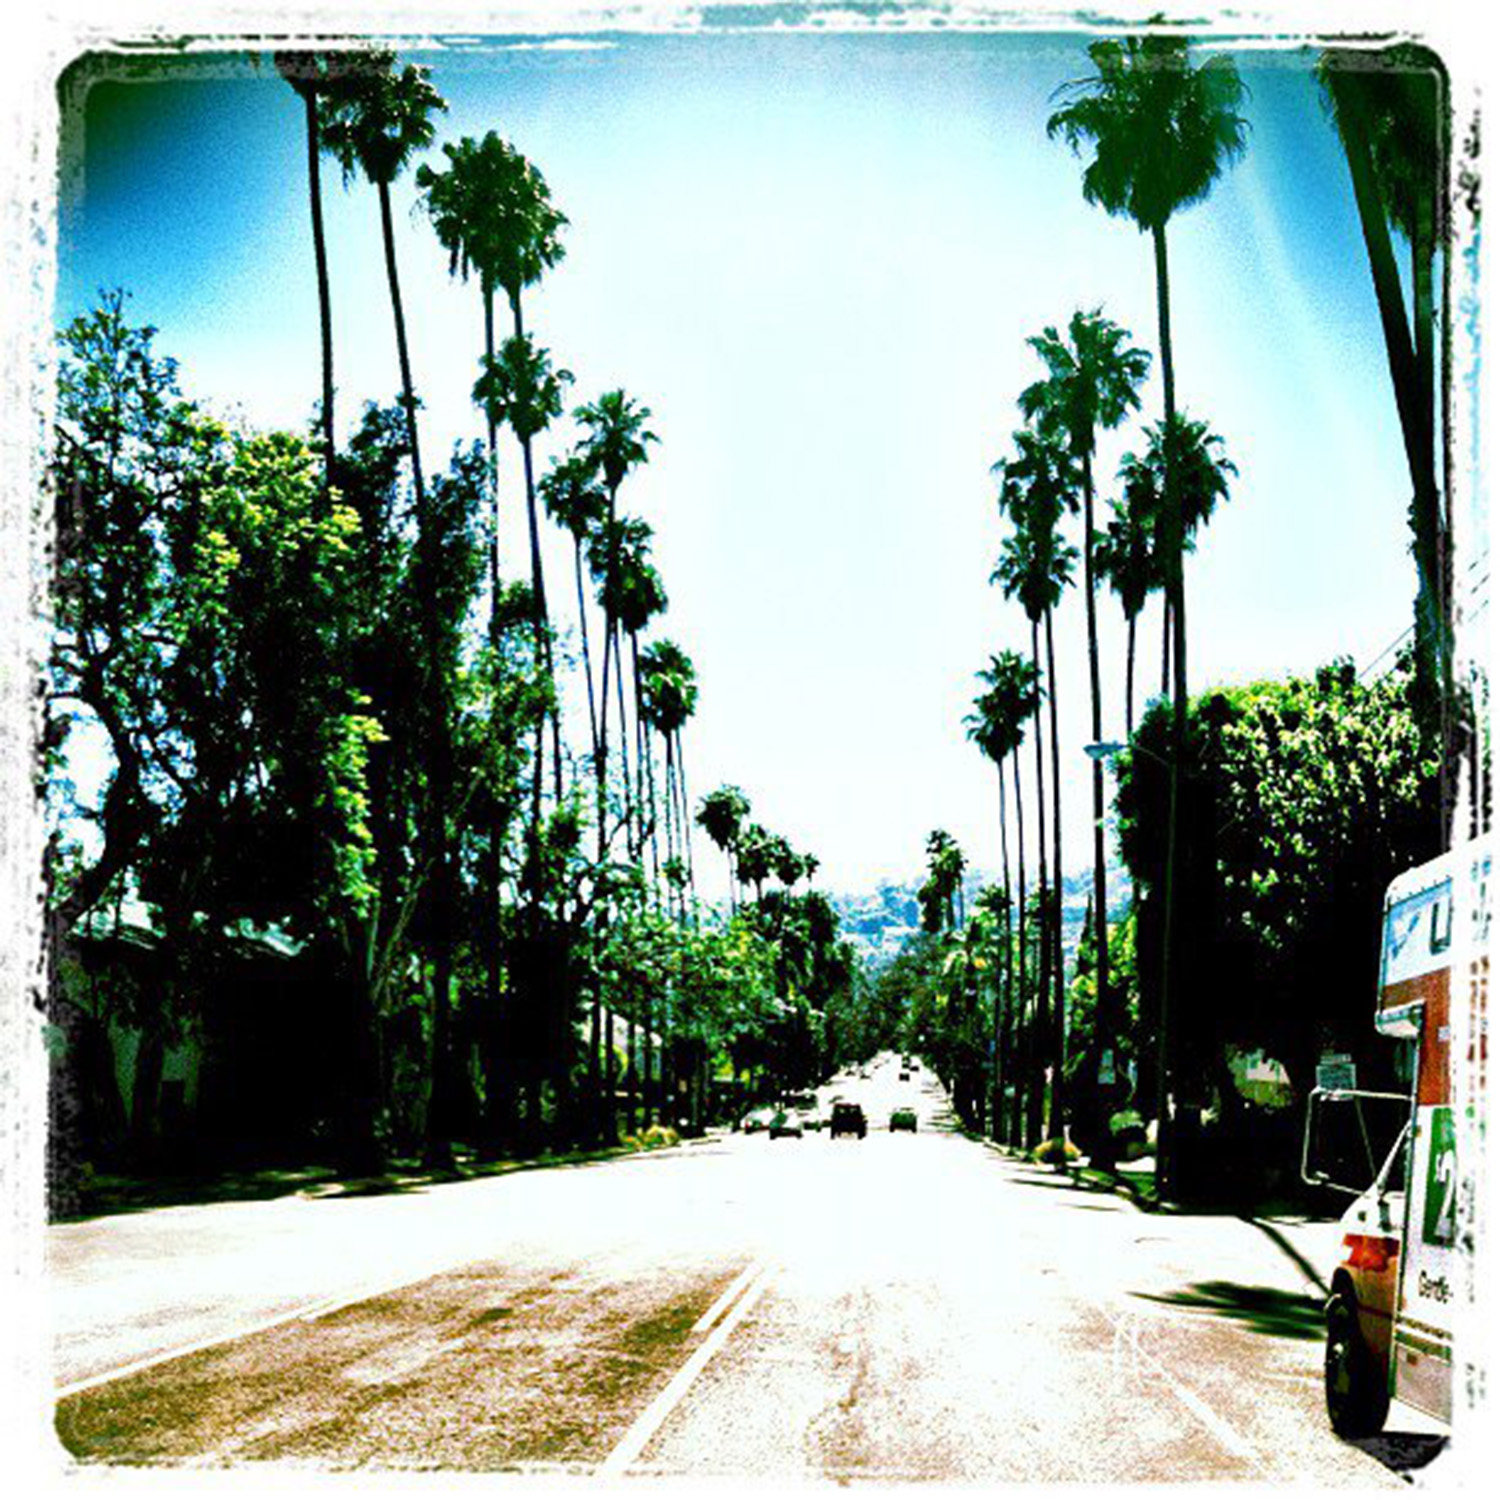 Palm trees line the streets of Los Angeles, July 2012